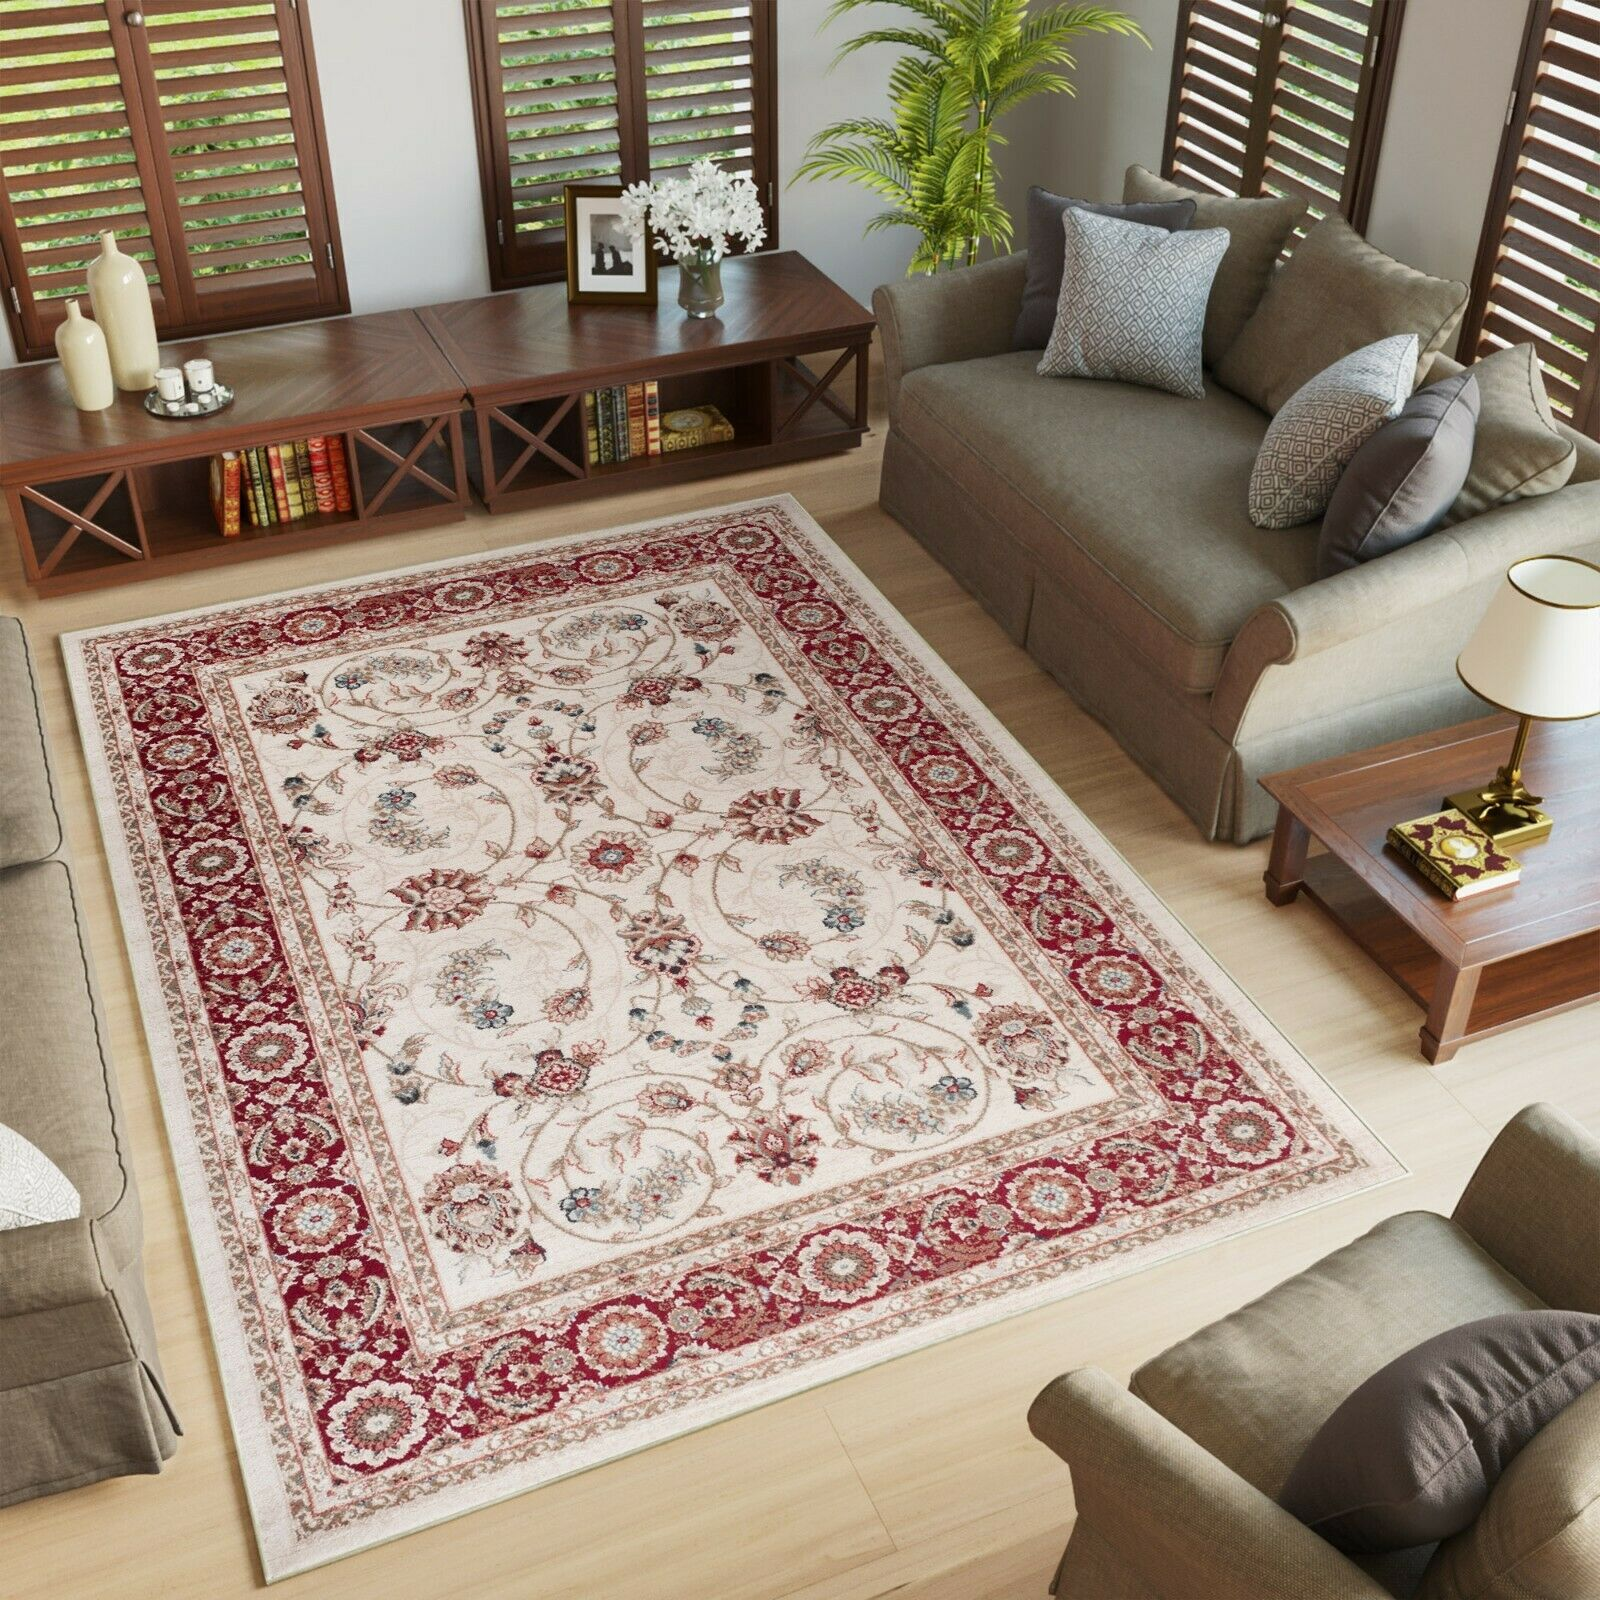 Rugs Carpets Small Medium Extra Large Beige White Rug Classical Pattern Quality Soft Rugs Medicareresources Org